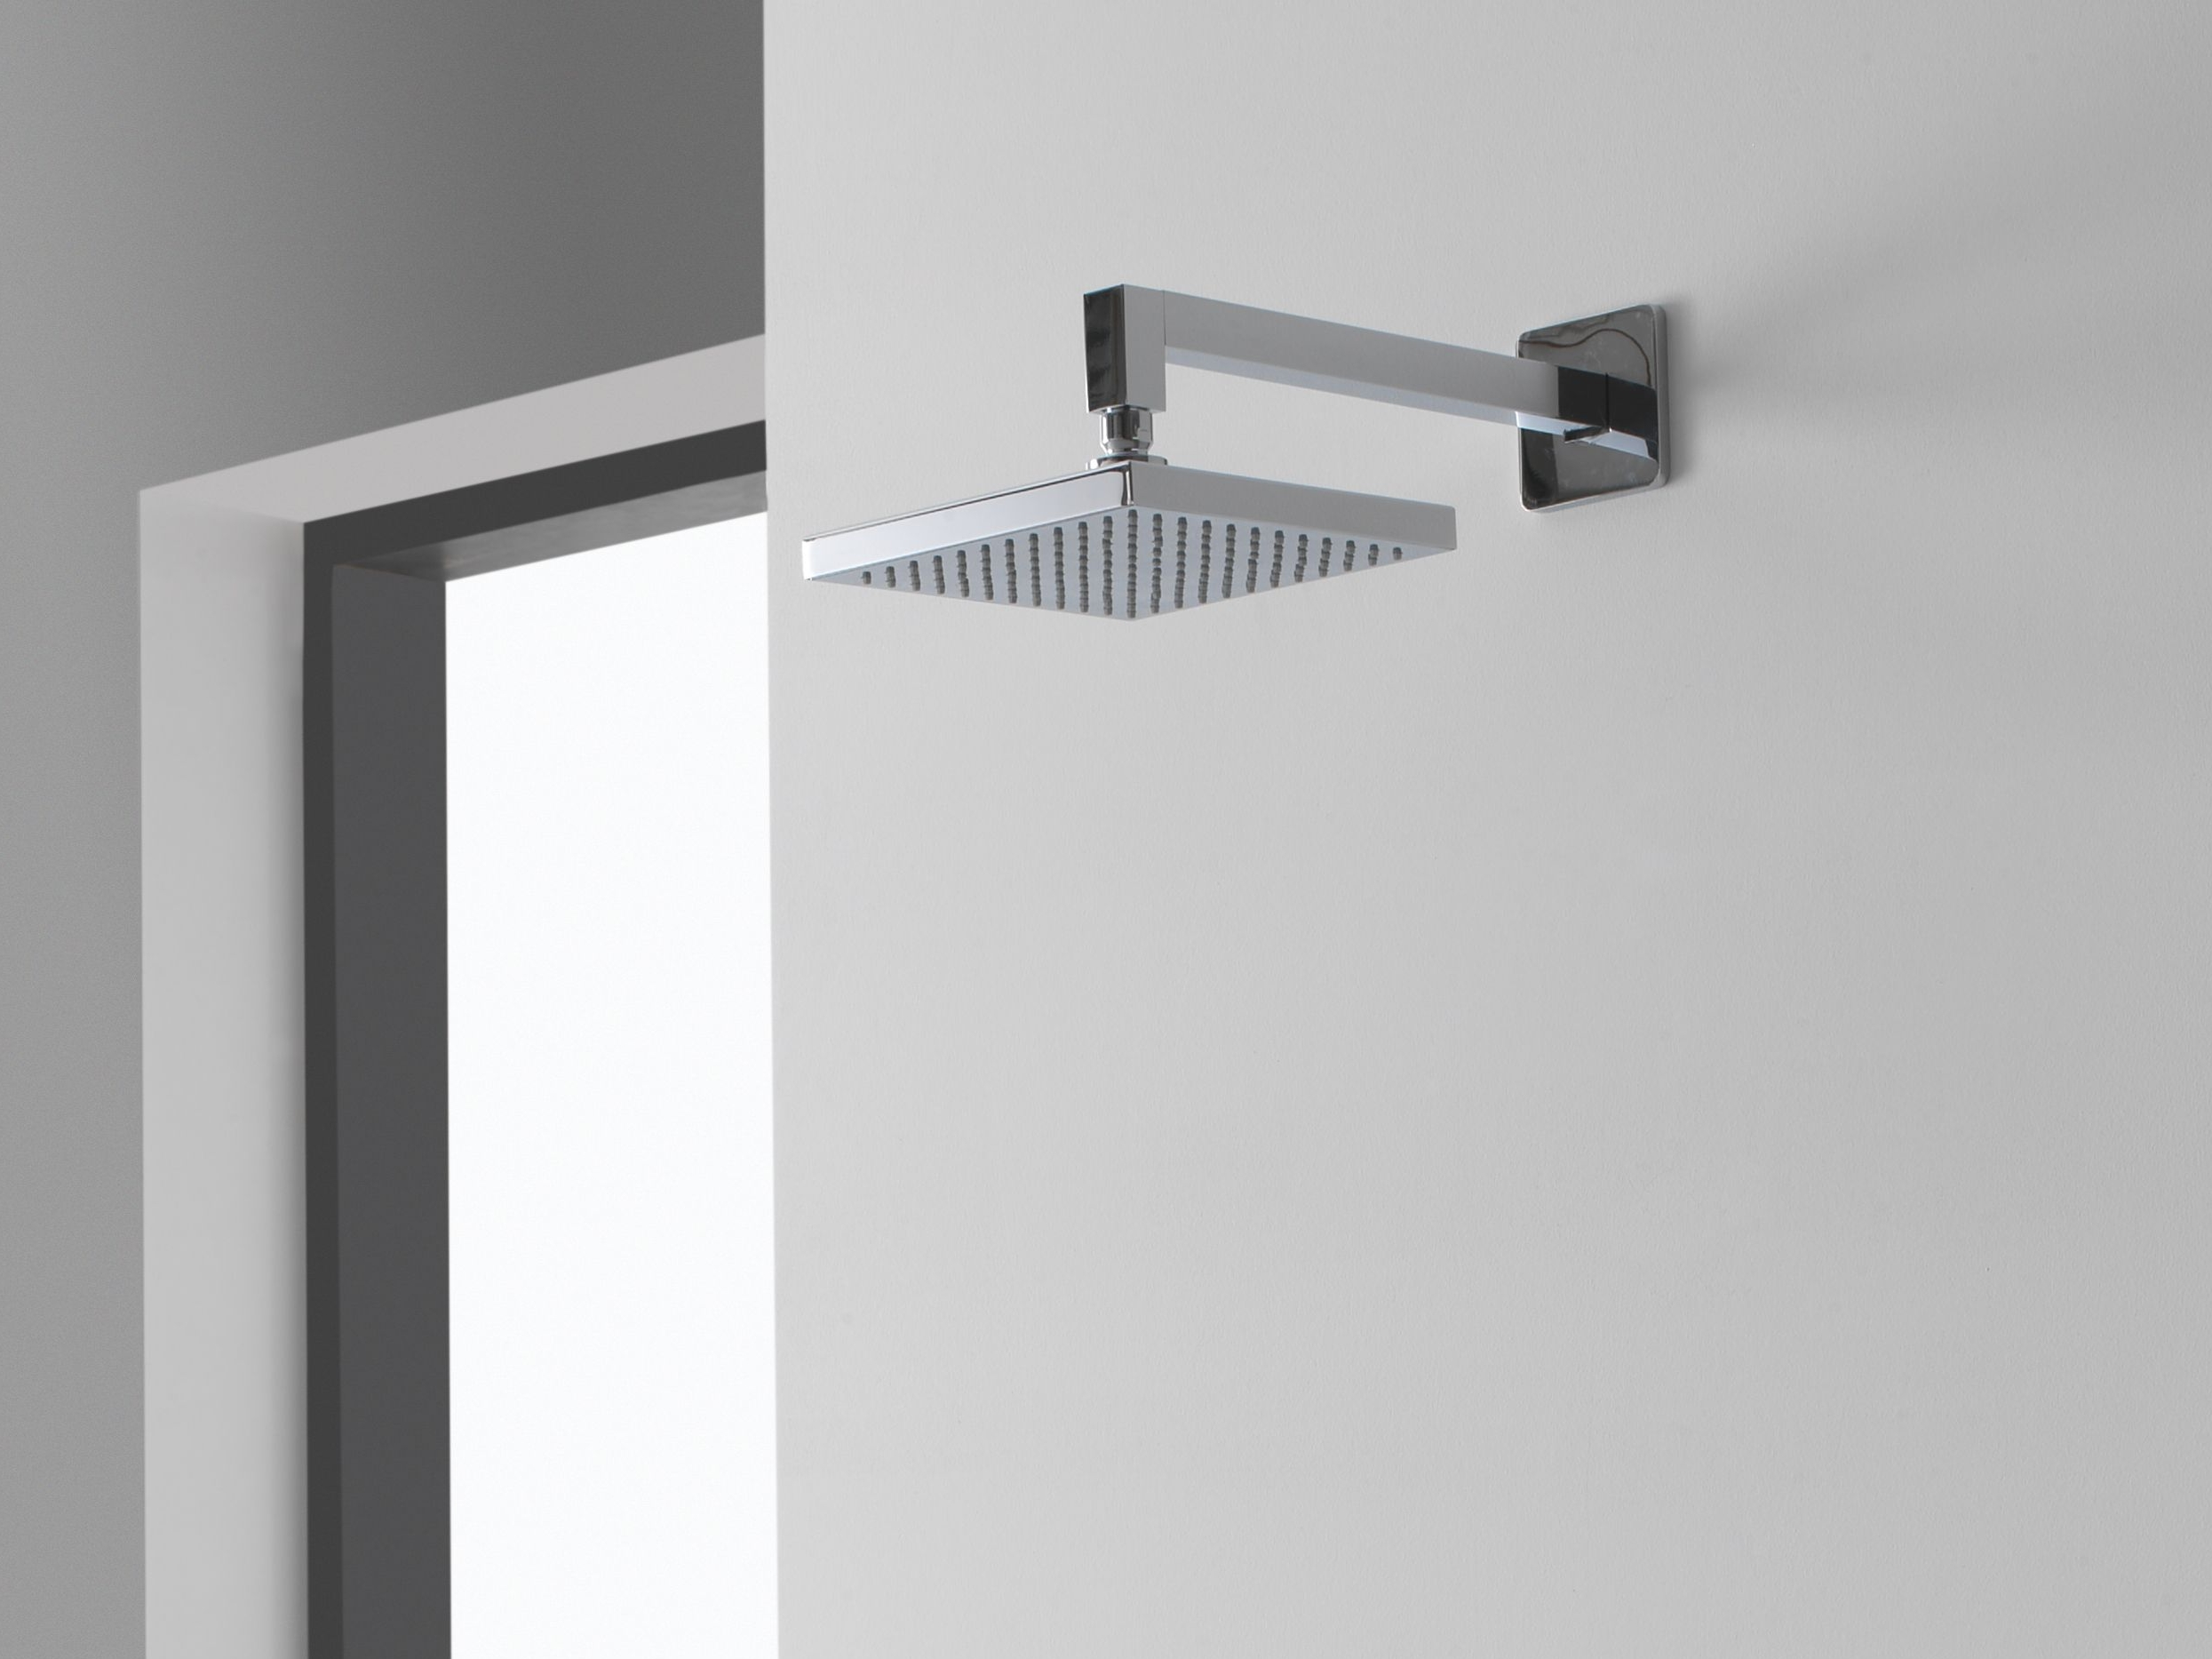 Overhead Shower With Arm Solar Collection By Graff Europe West